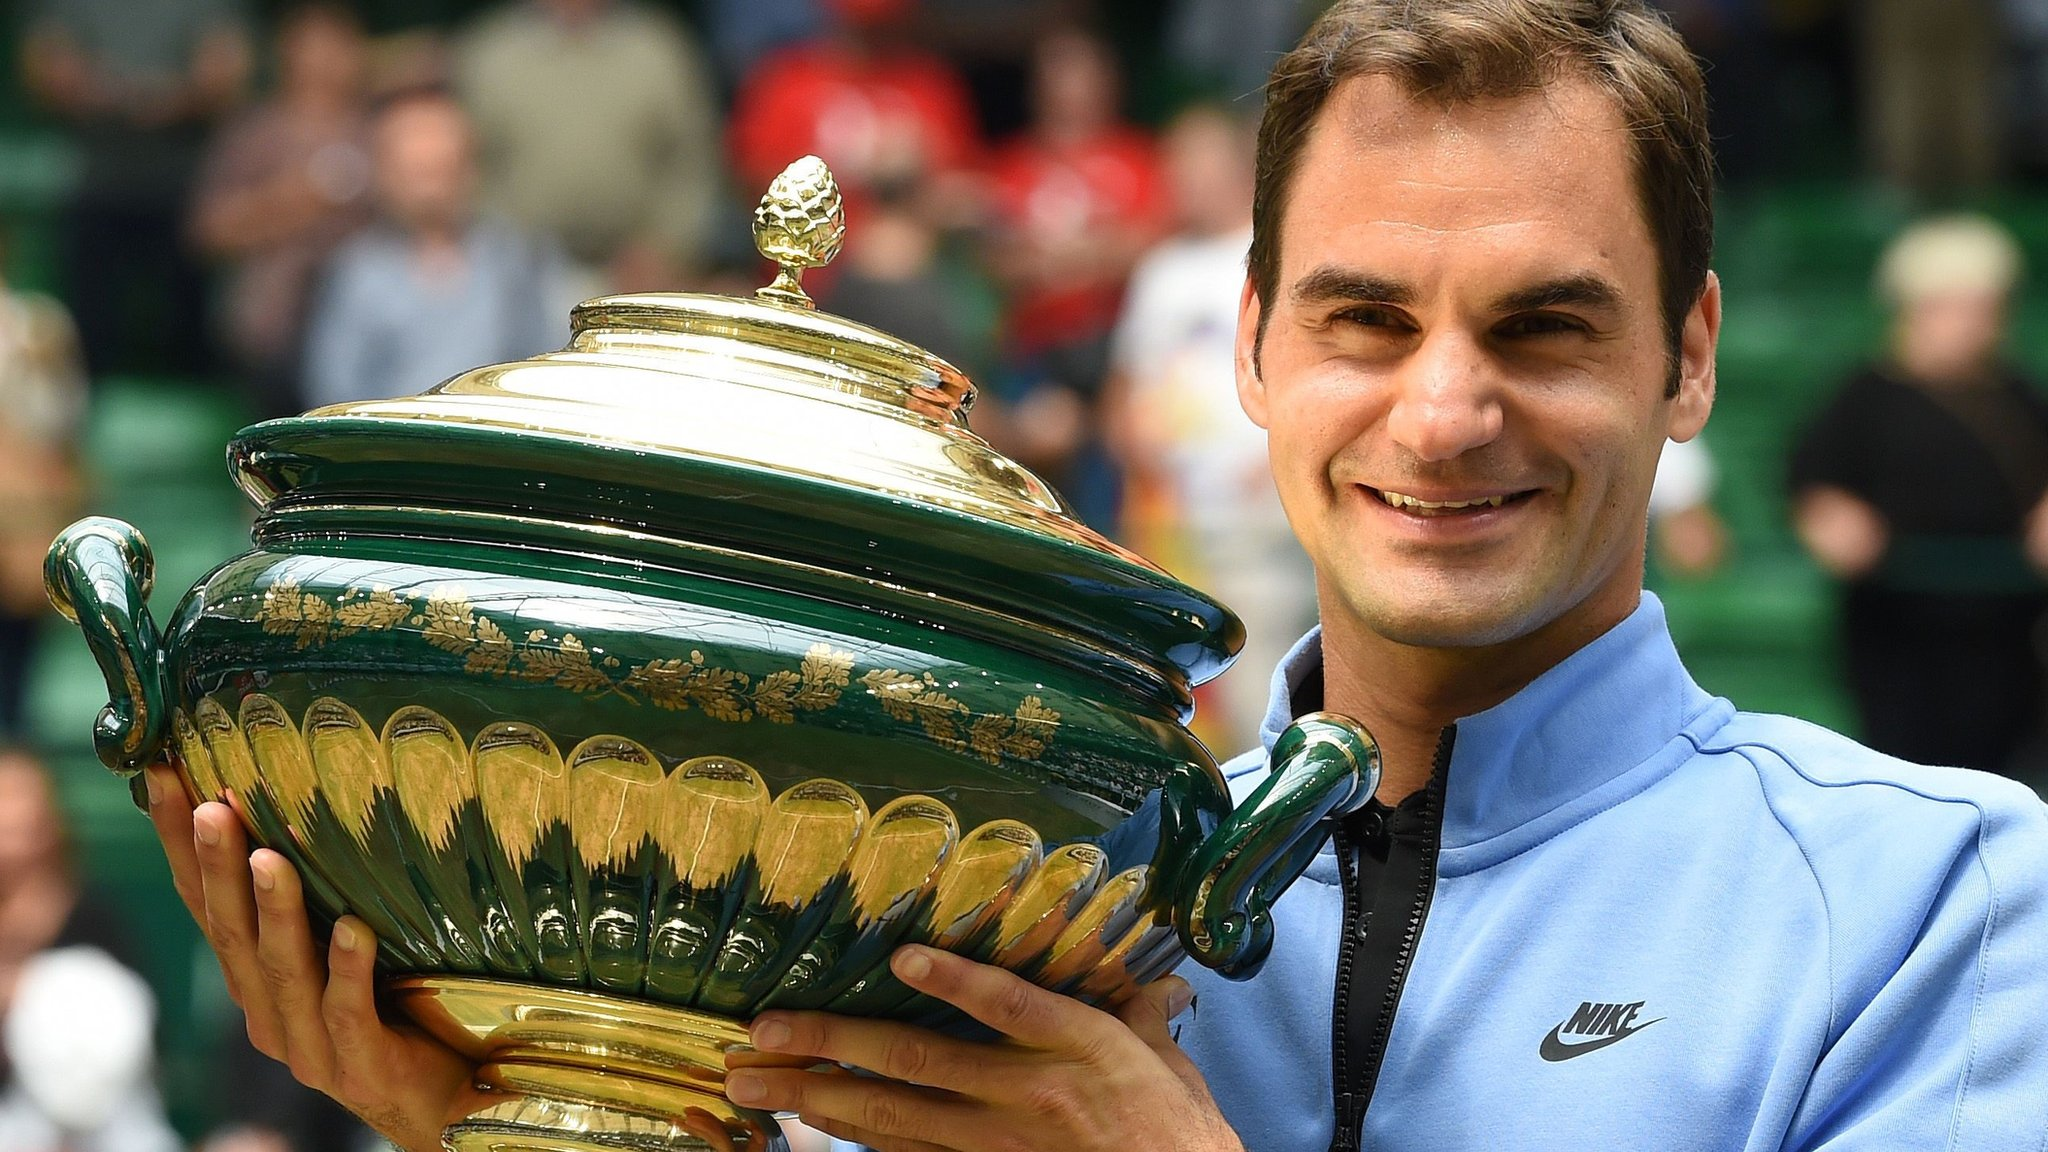 Roger Federer beats Alexander Zverev to win Gerry Weber Open in Halle